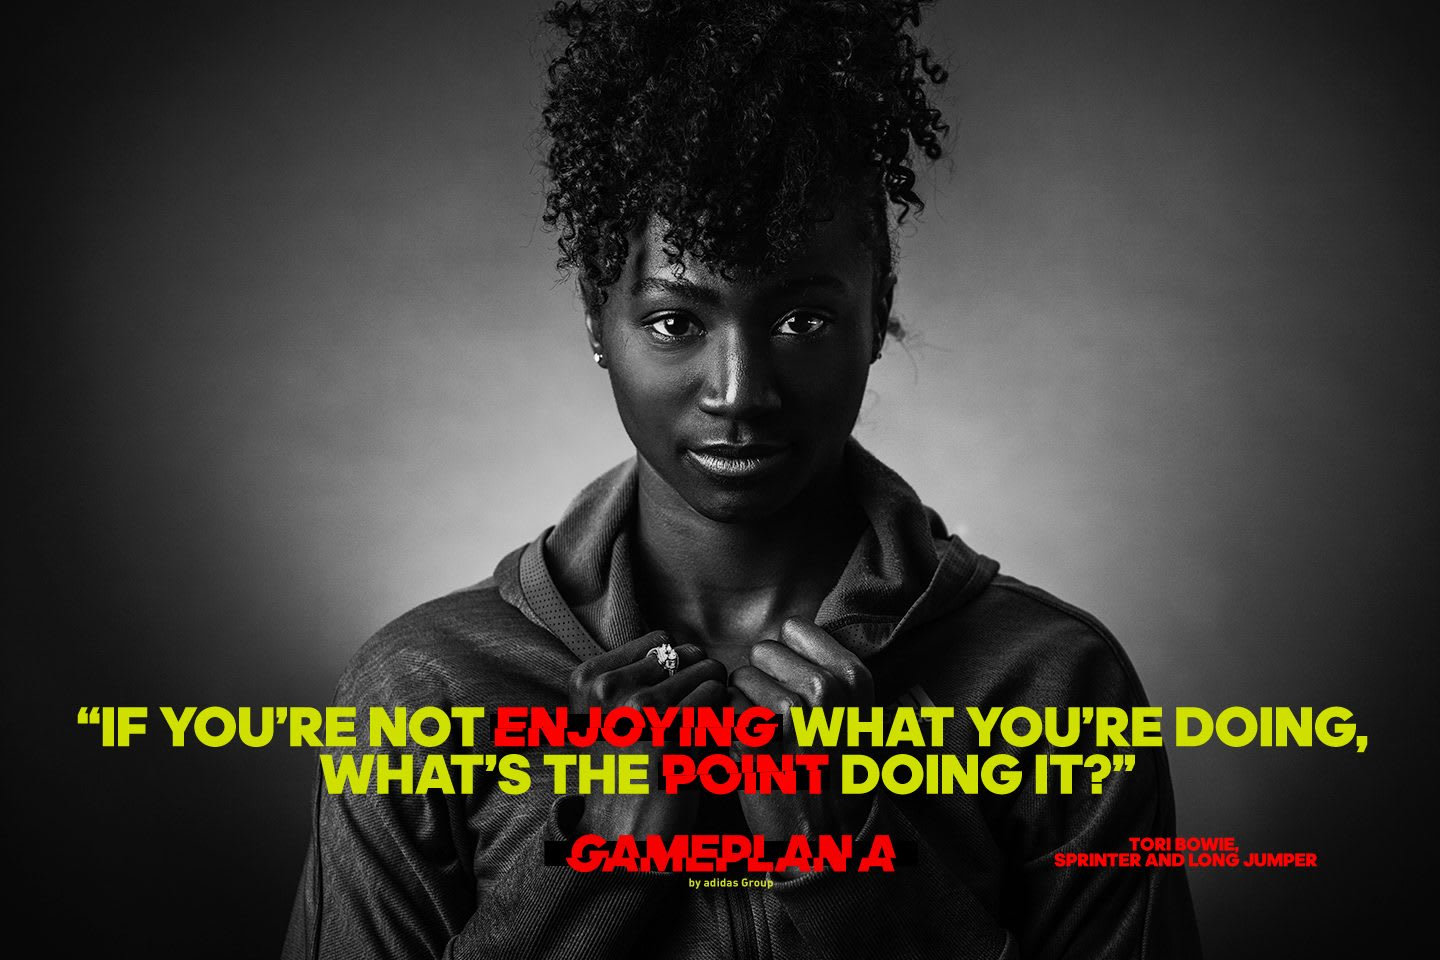 tori bowie sprinter and long jumper quote